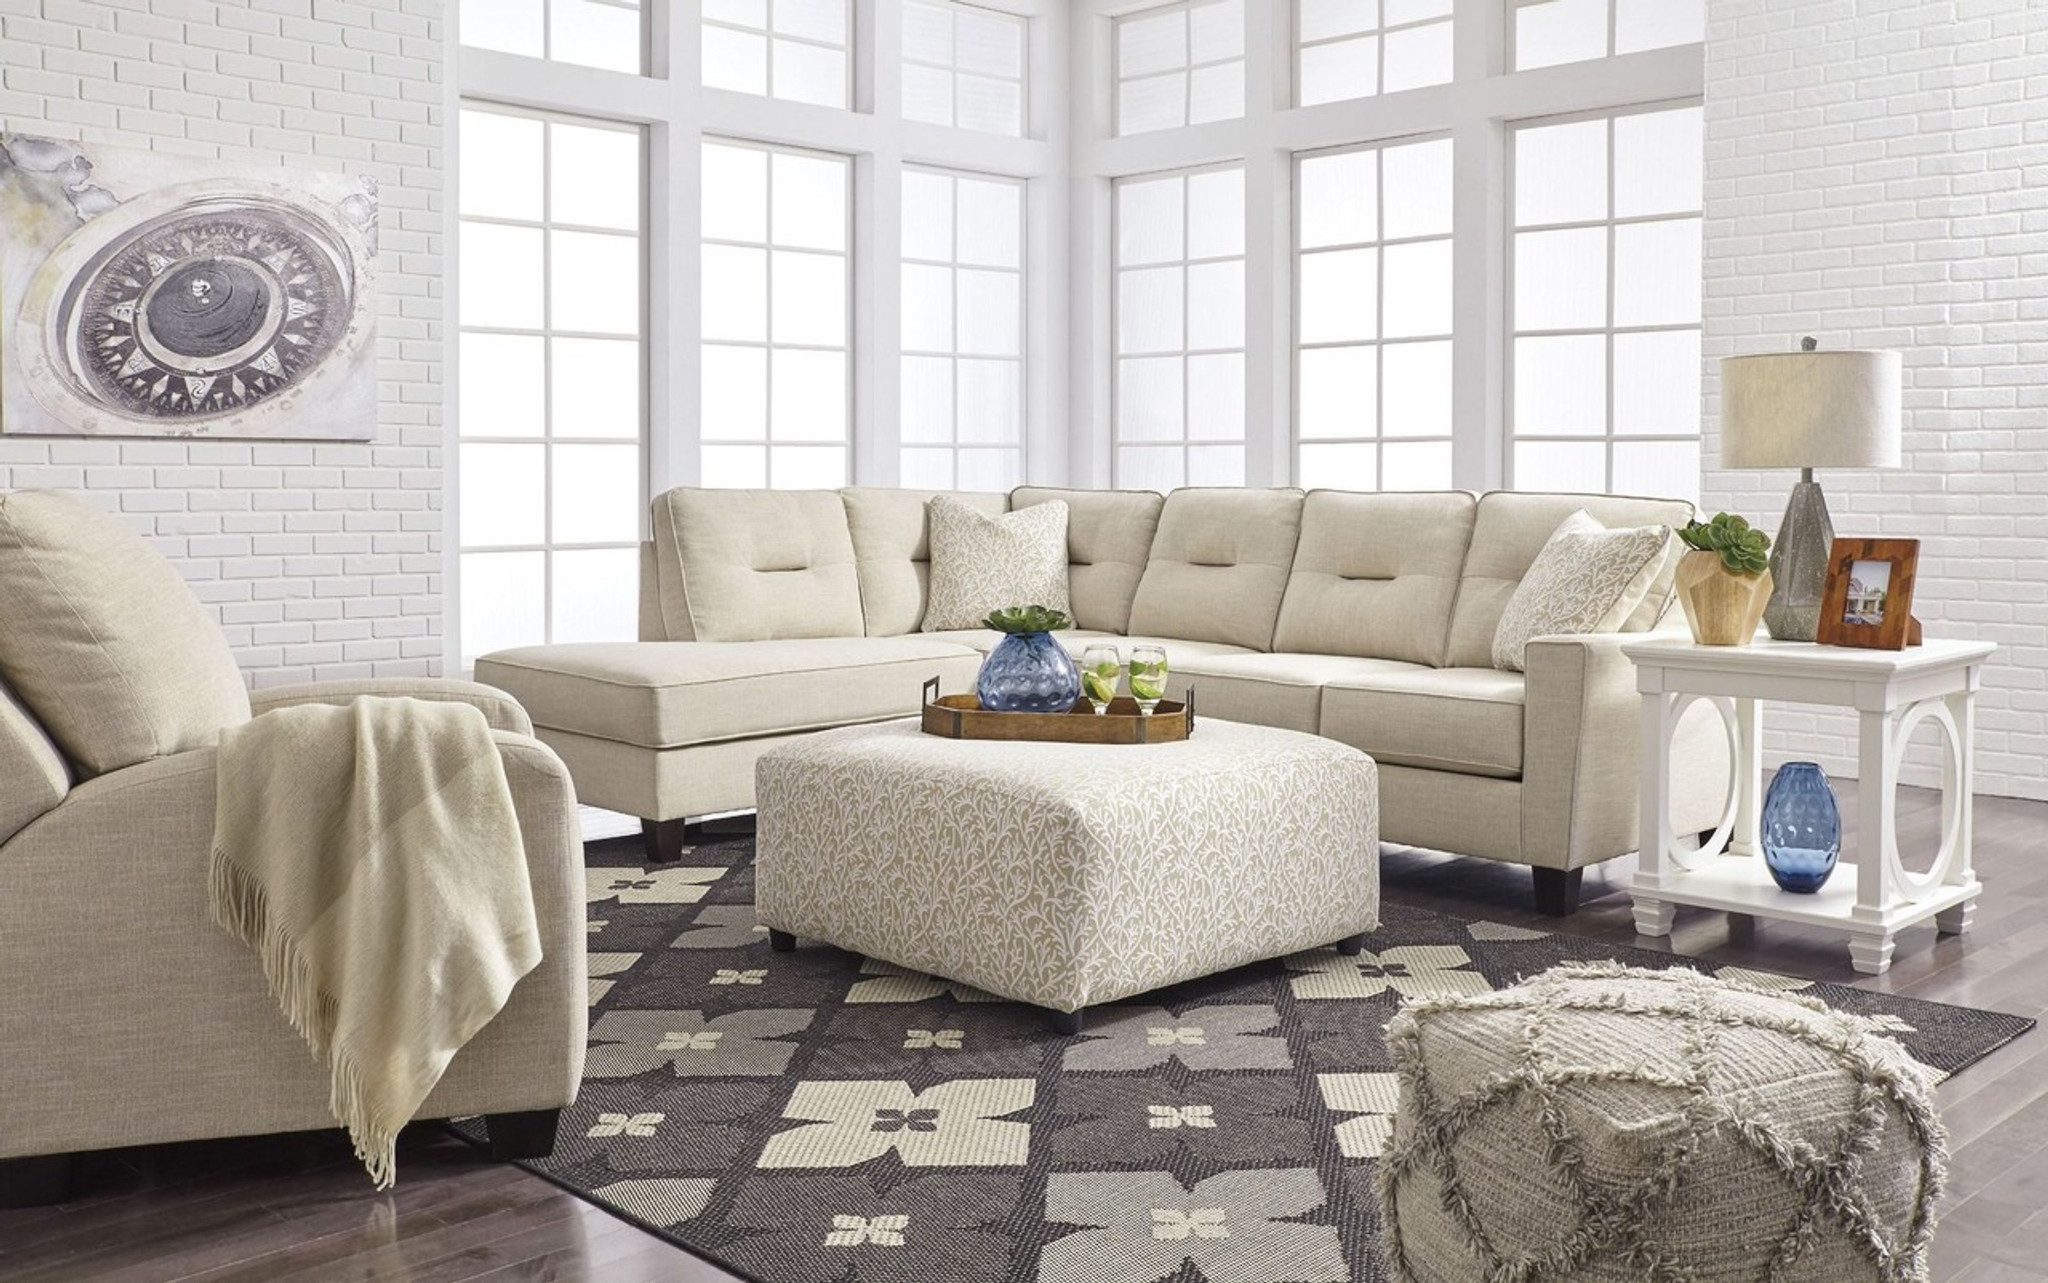 Marvelous Kirwin Nuvella Sand Collection Sectional Set Home Interior And Landscaping Palasignezvosmurscom